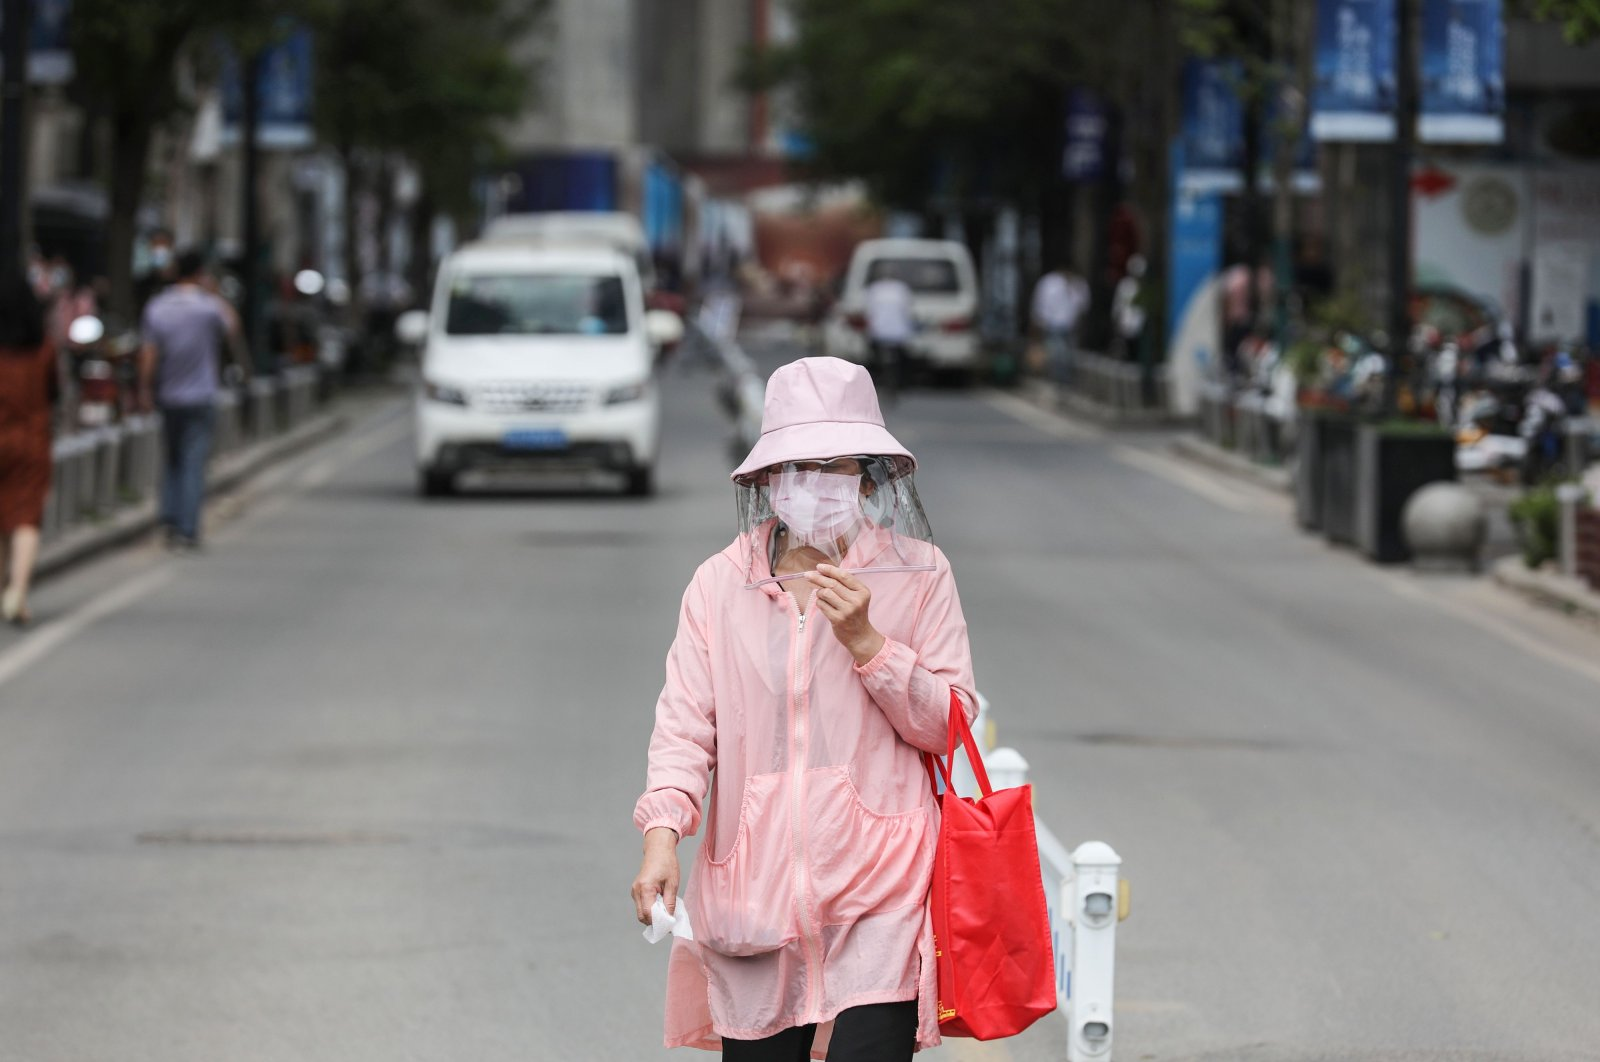 A woman wears a face shield as she walks along a street, Wuhan, China, May 11, 2020. (AFP Photo)